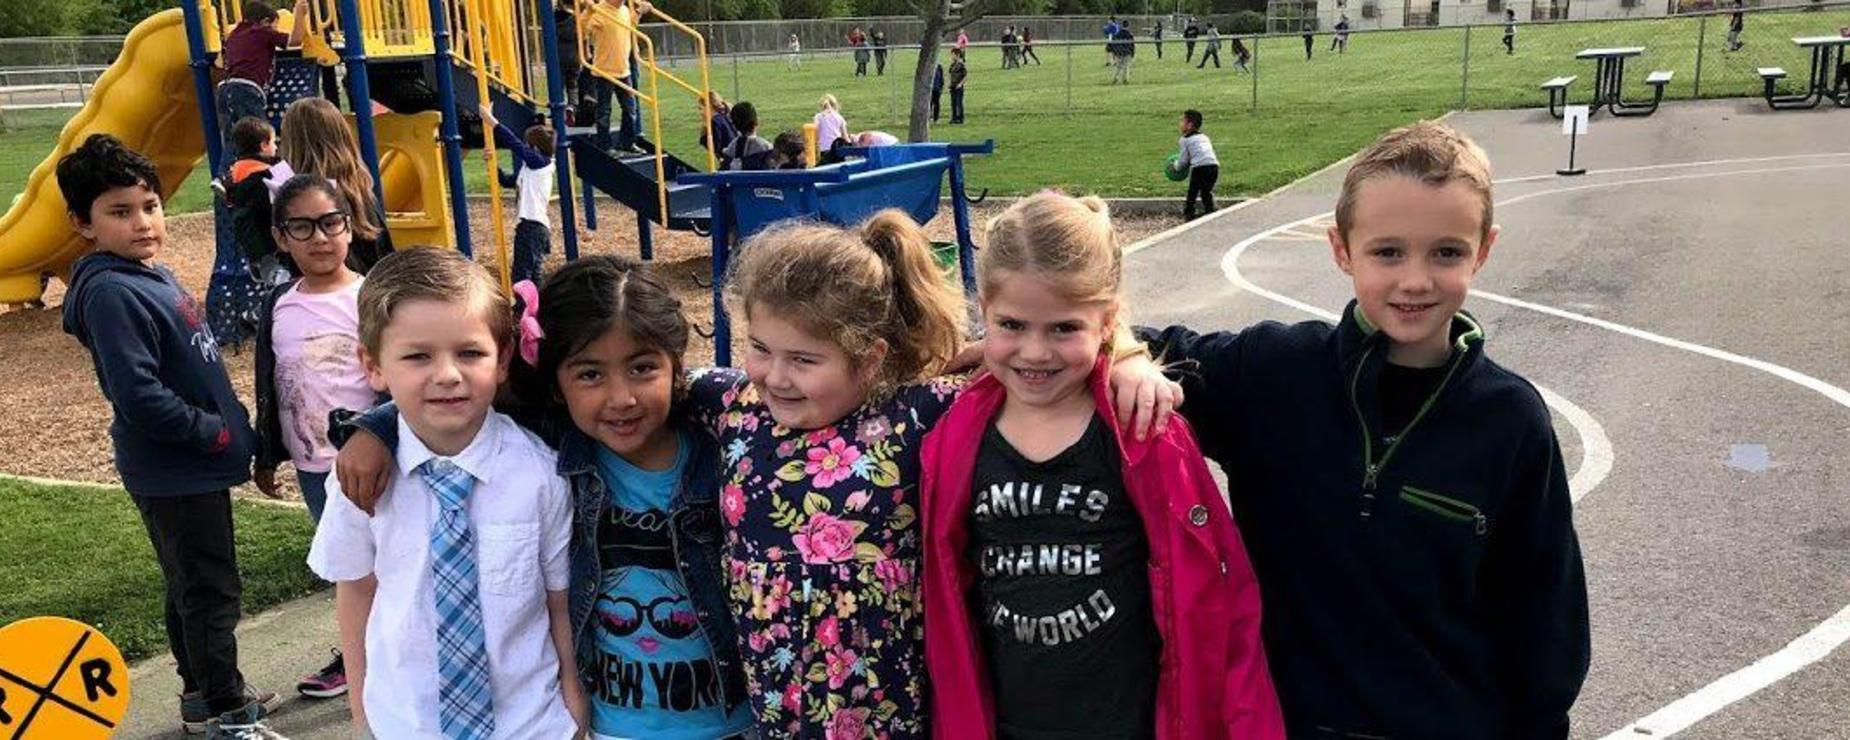 students smiling together in playground